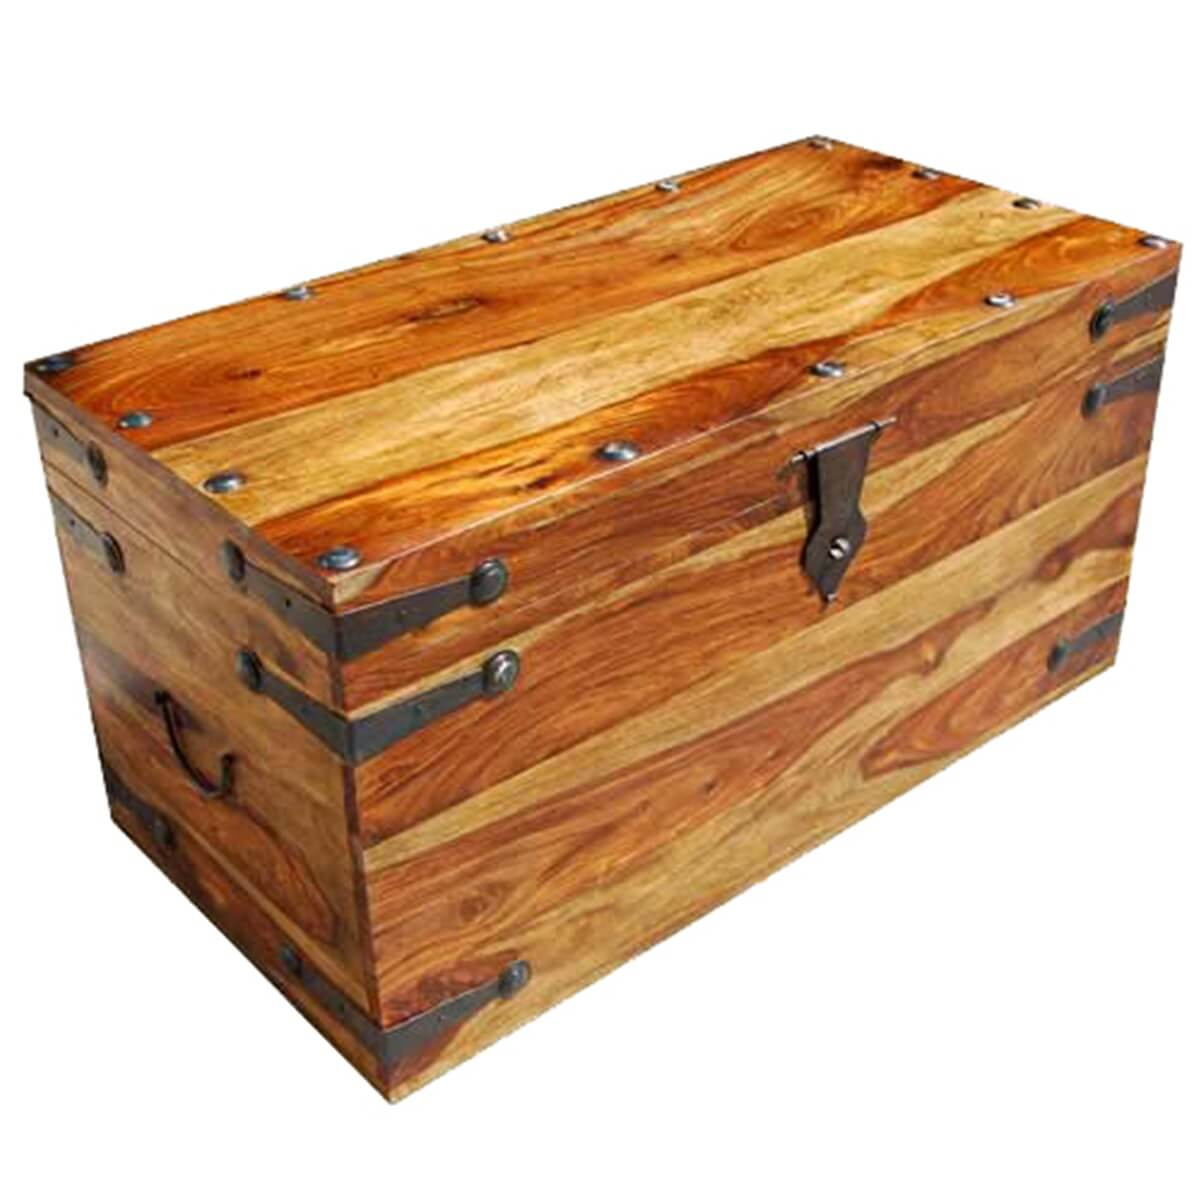 Kokanee Rustic Solid Wood Blanket Storage Trunk Coffee Table Chest Ebay